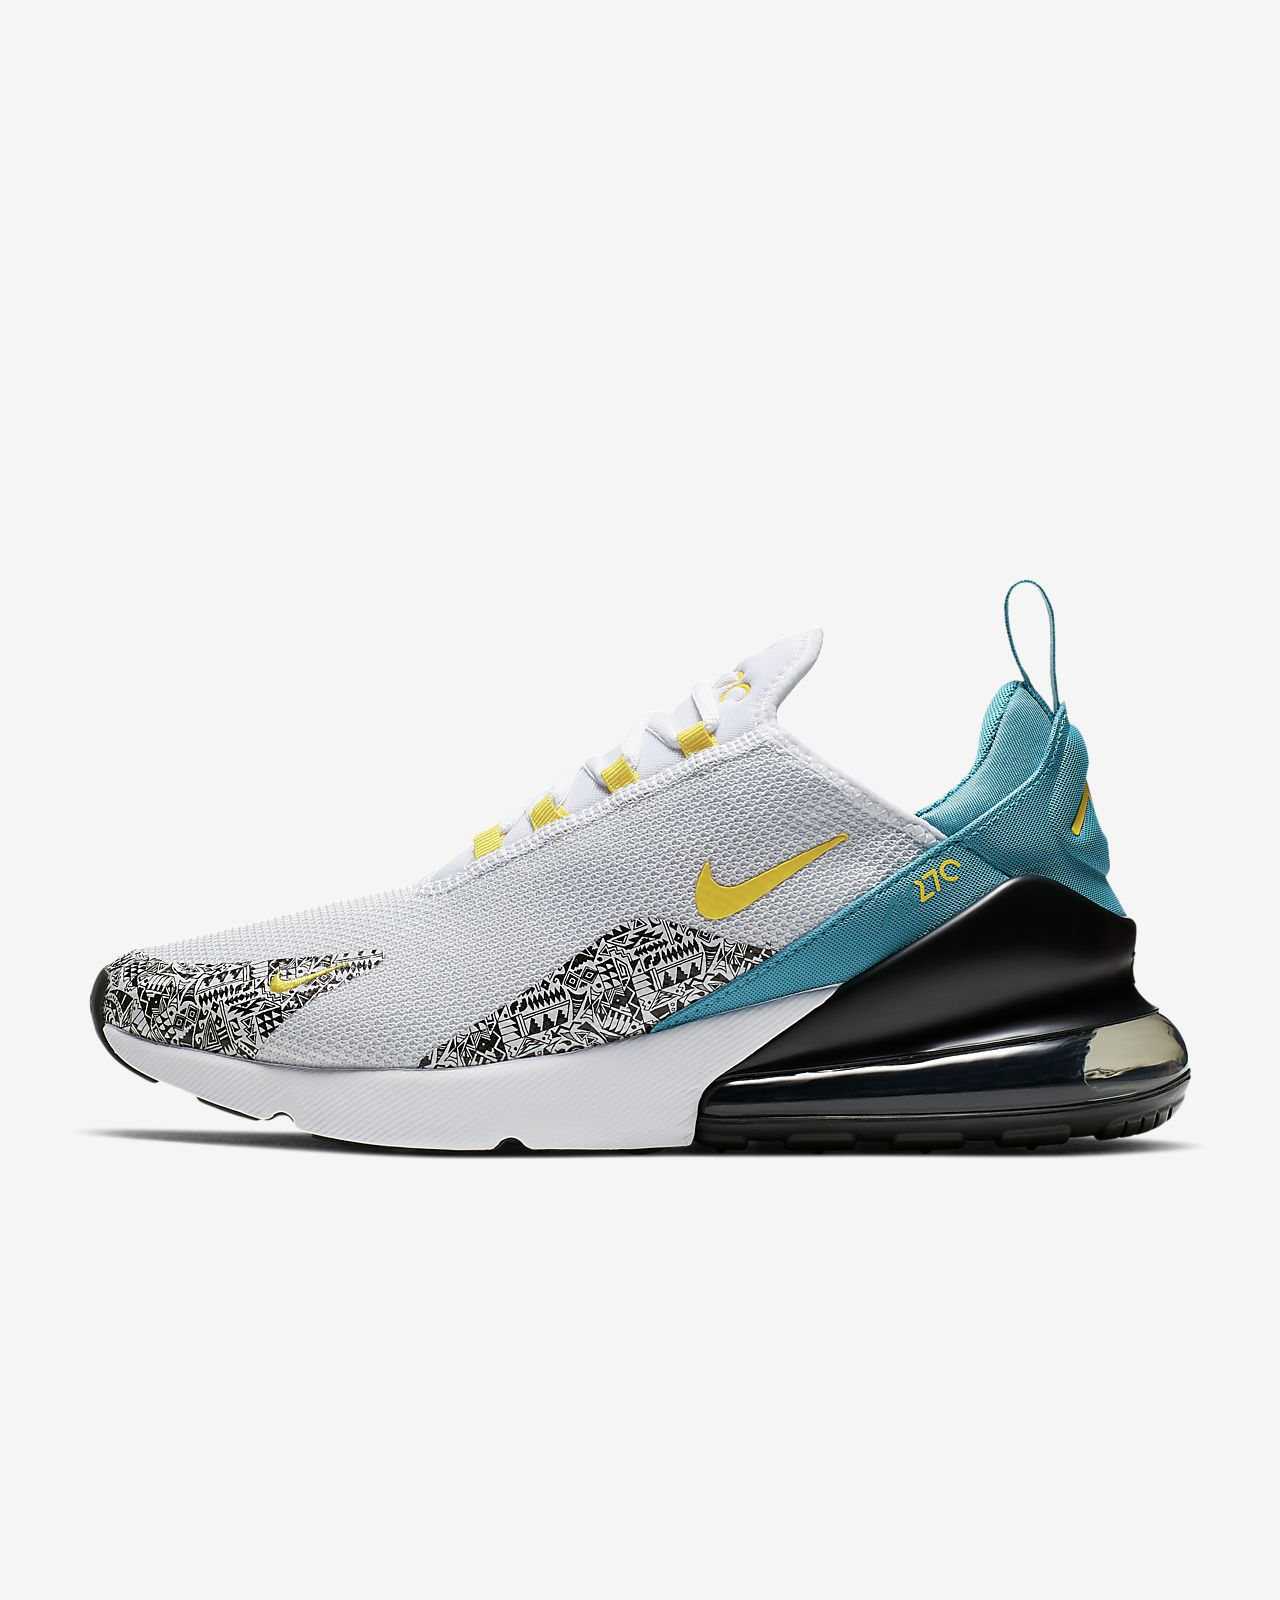 premium selection 27bde 9e77c Nike Air Max 270 N7 Men's Shoe